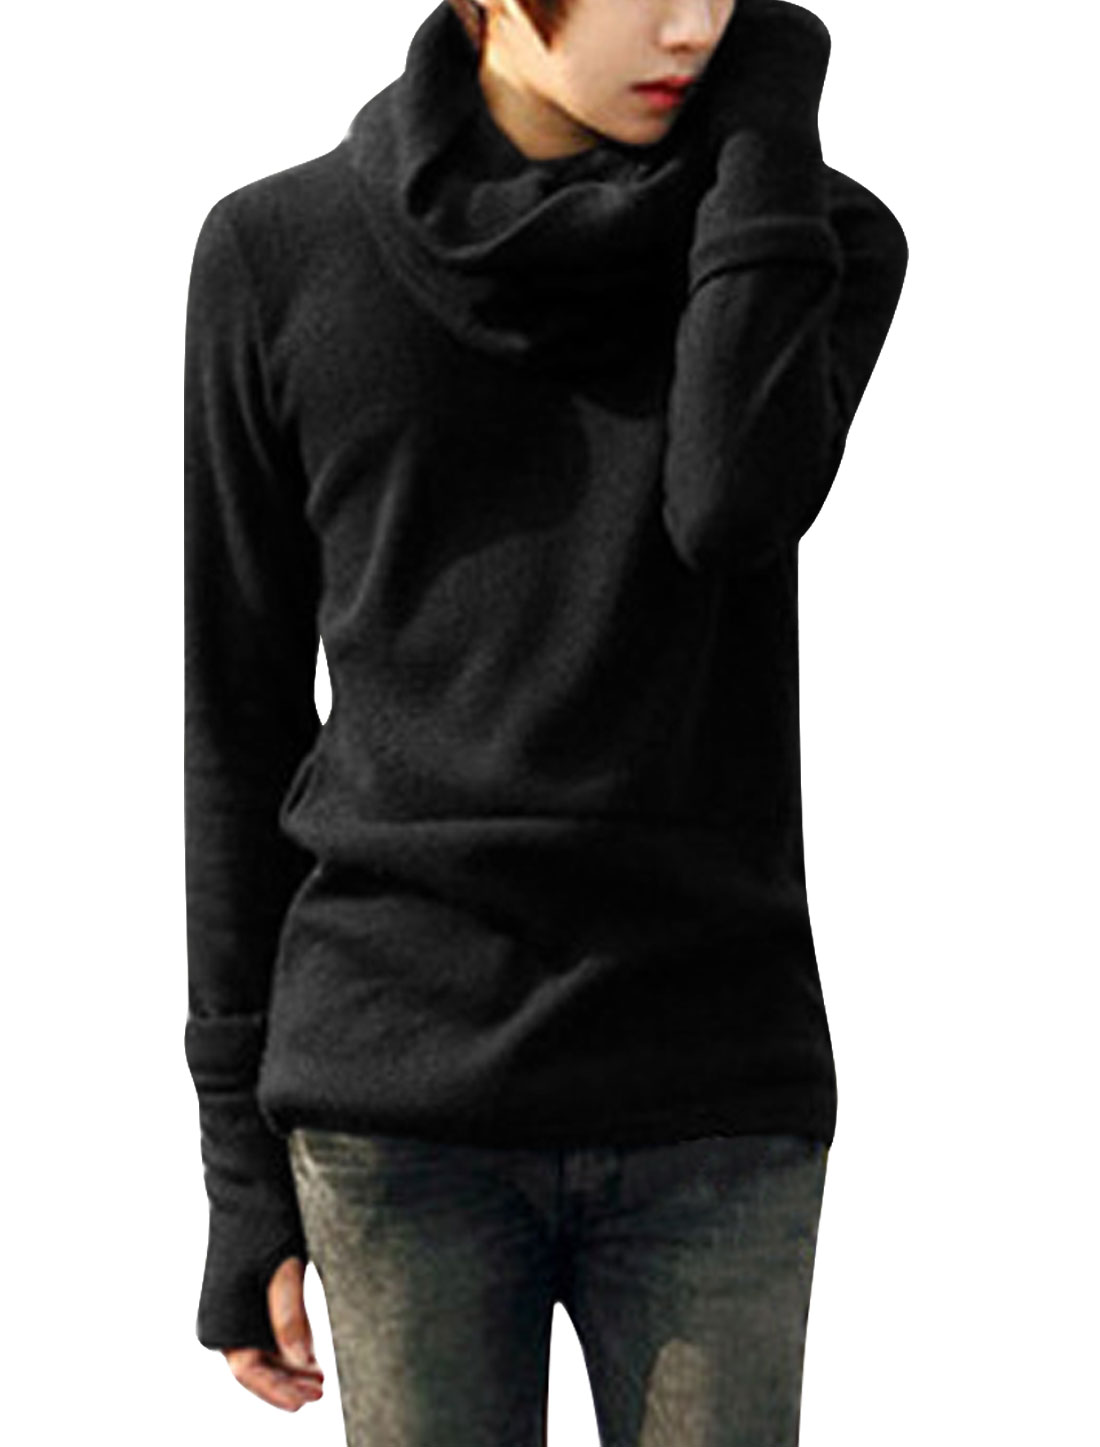 Men Round Neck Pullover Removerable Scarf Knitted Shirt Black S